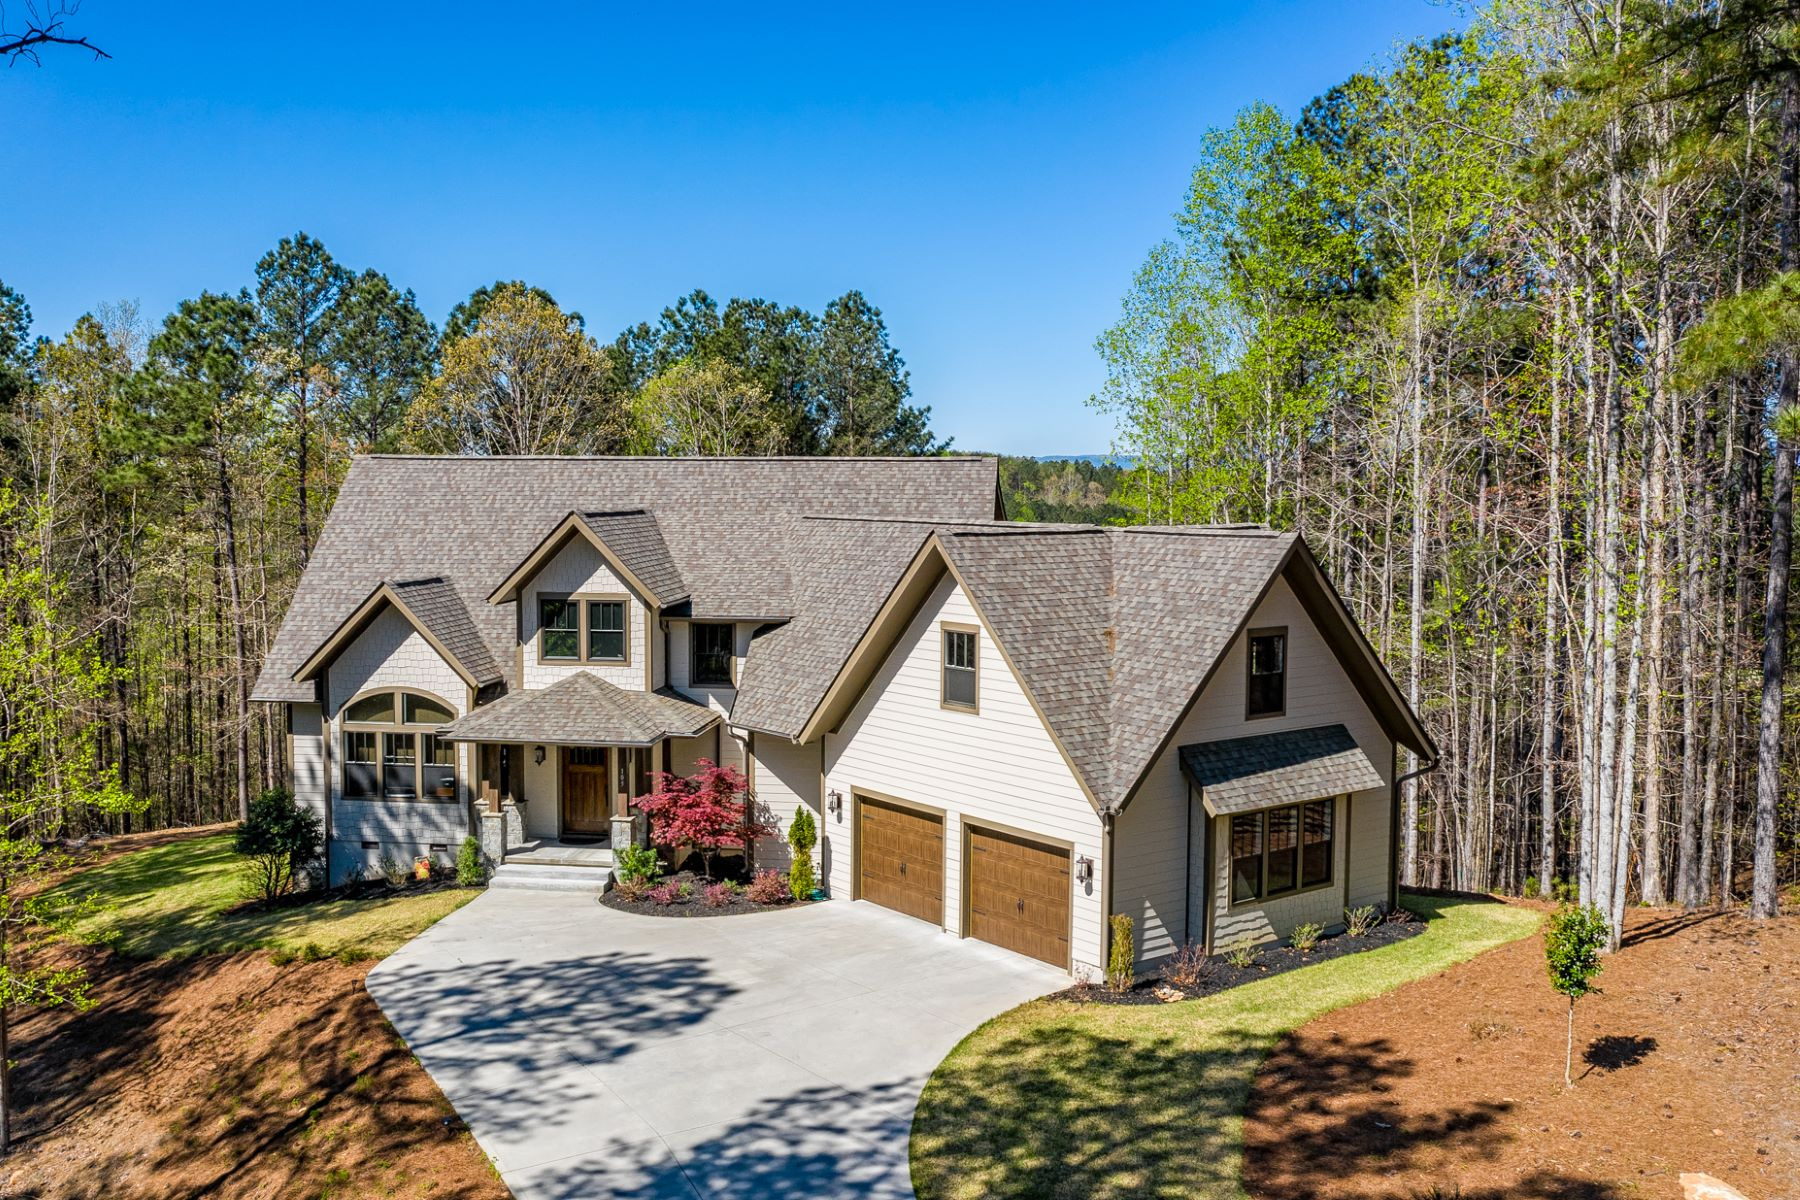 Single Family Homes for Active at Enchanting Woodland Setting 105 Scenic Crest Way Six Mile, South Carolina 29682 United States